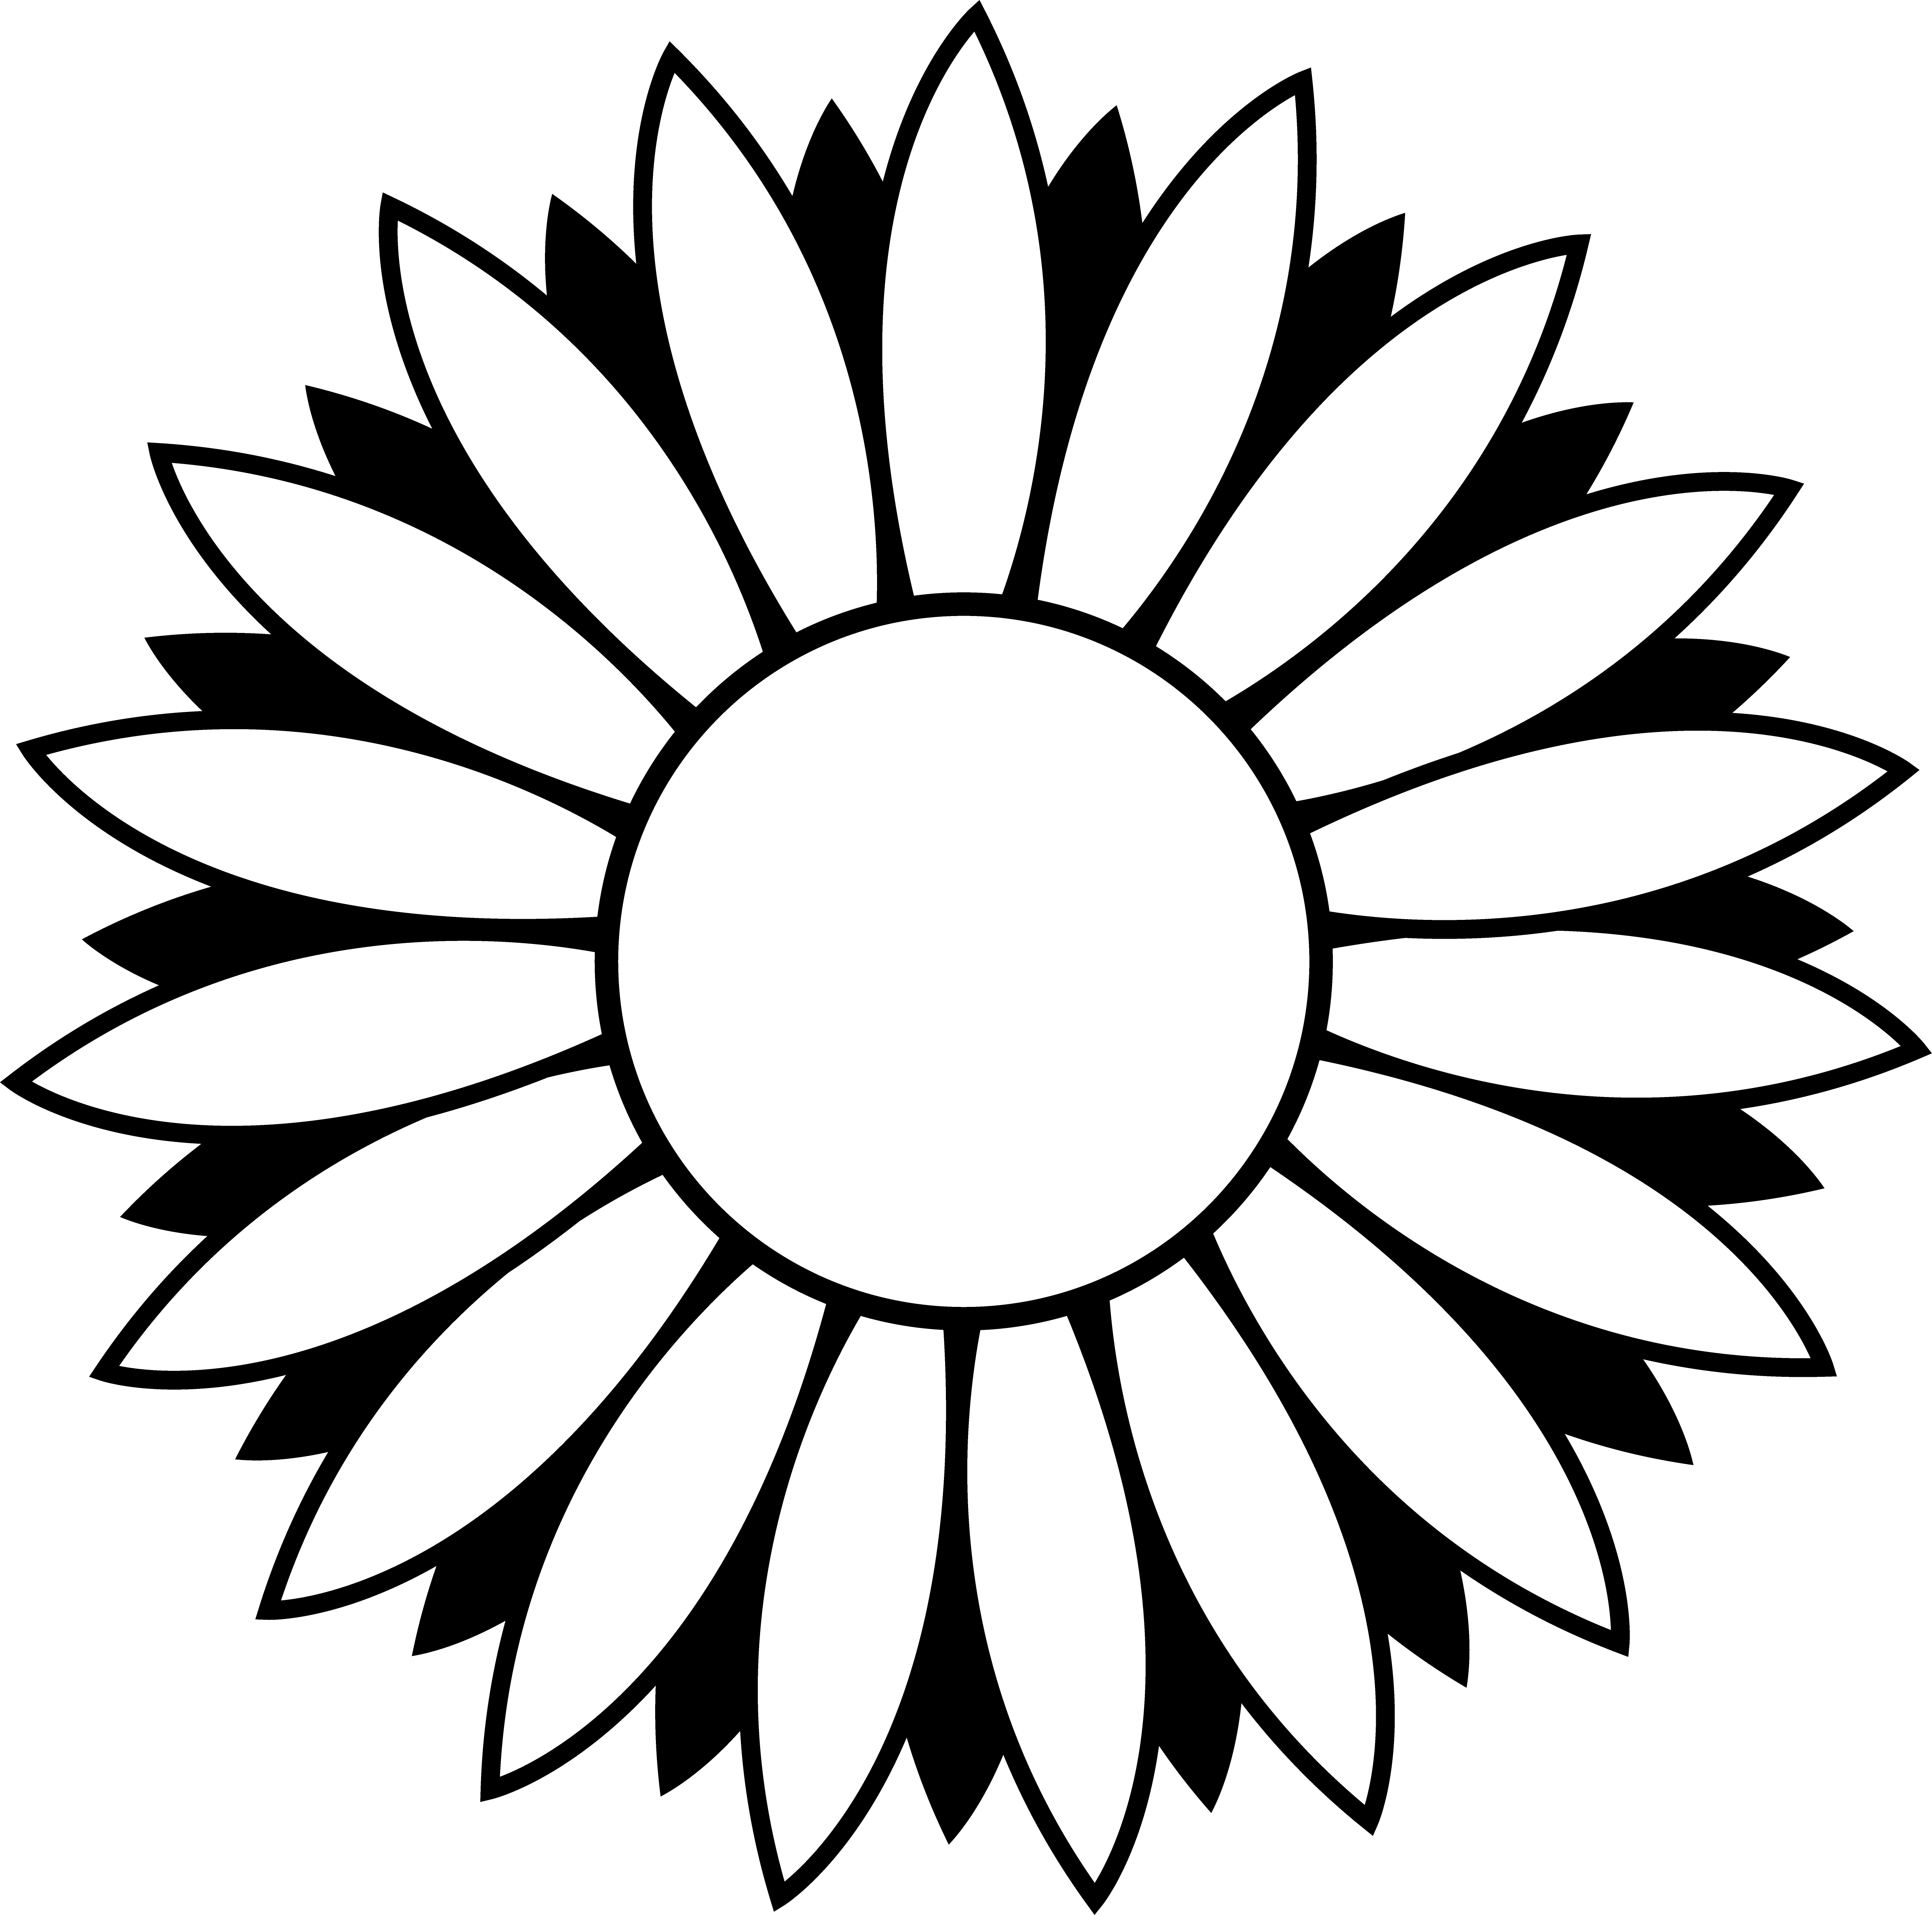 Sunflower Clipart Black And White Border | Clipart Panda - Free ...